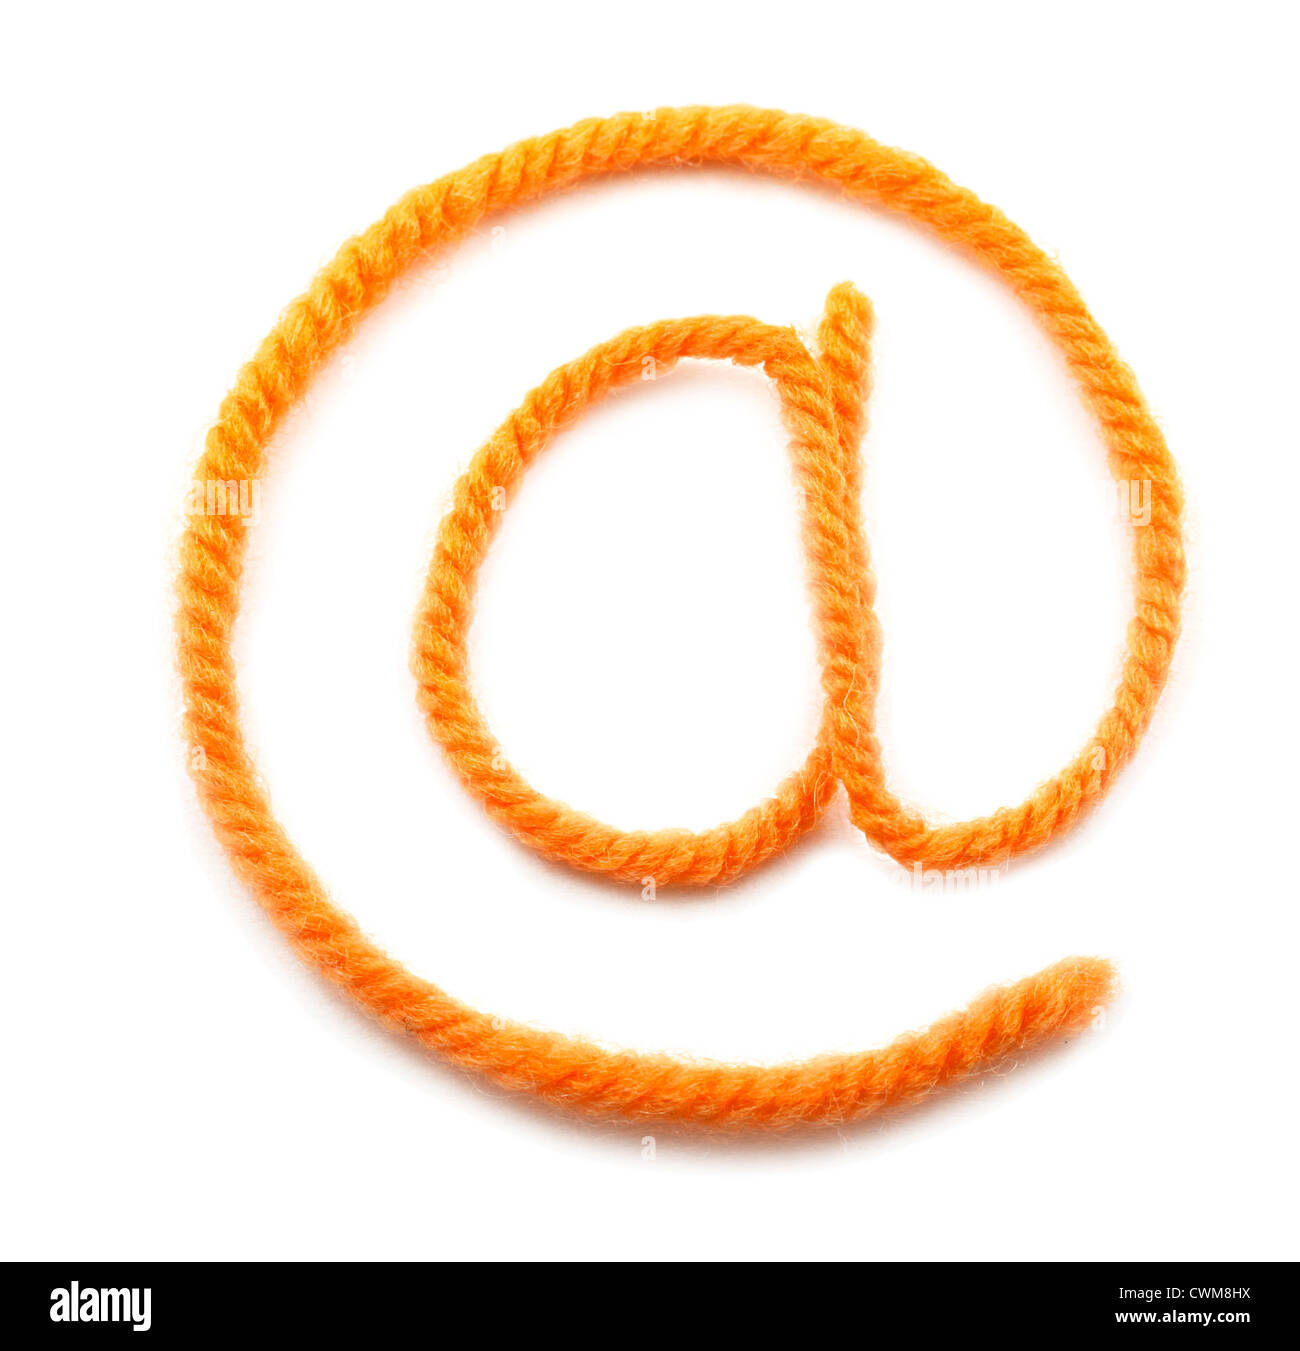 the symbol e-mail from a orange wool - Stock Image